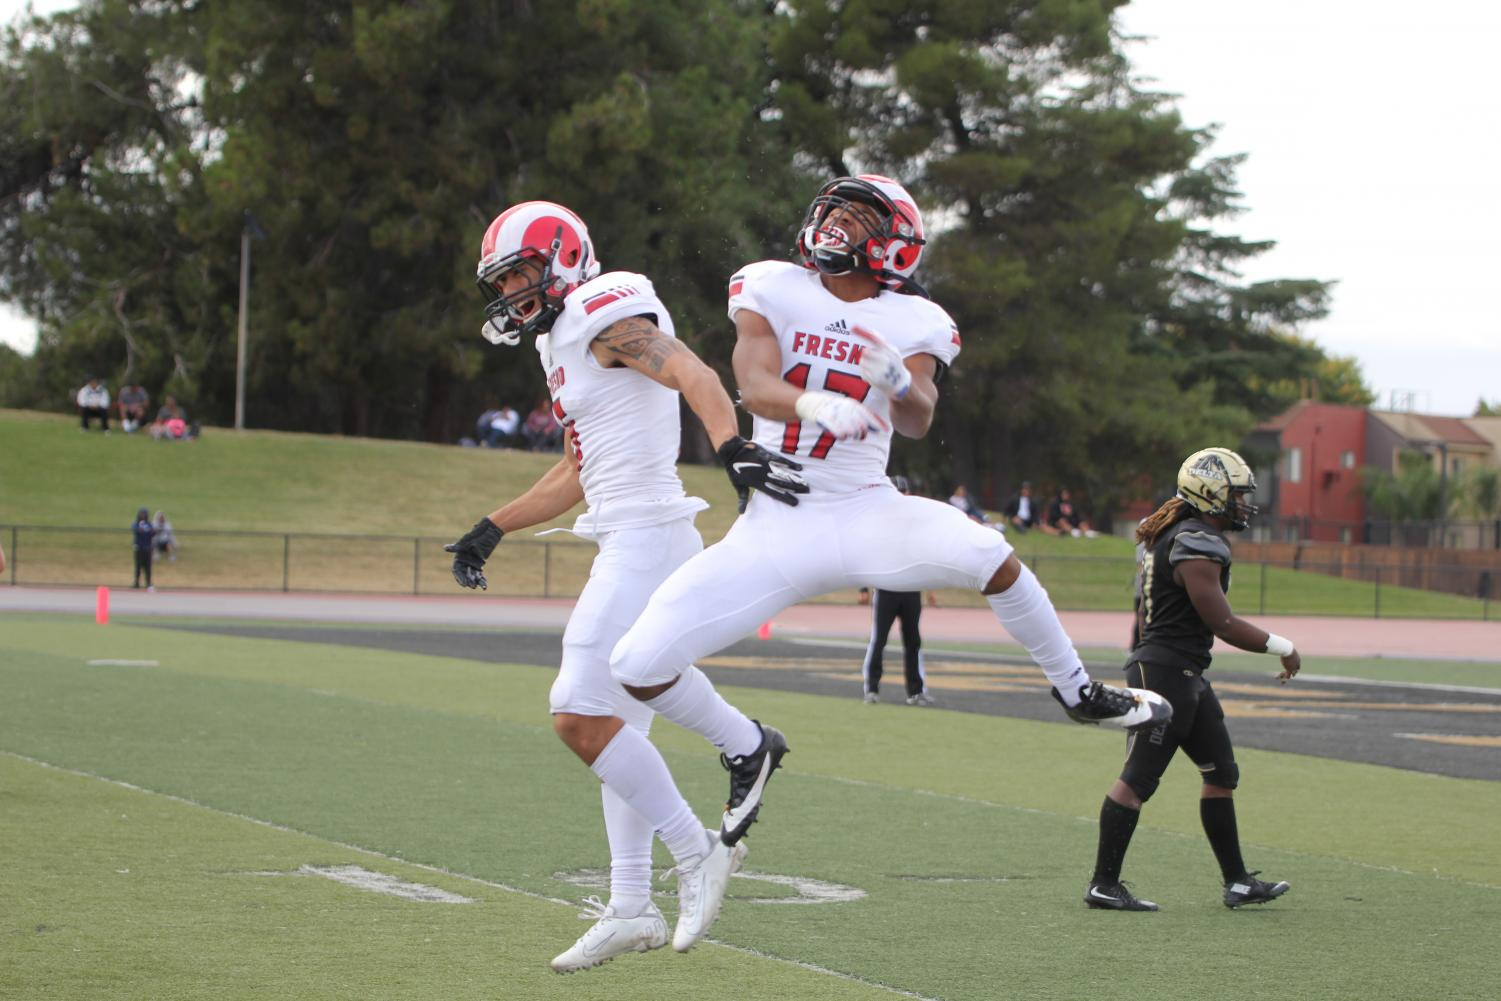 Austin Aukia (left) and Milton Clements (right) celebrate a touchdown on Oct. 19, 2019